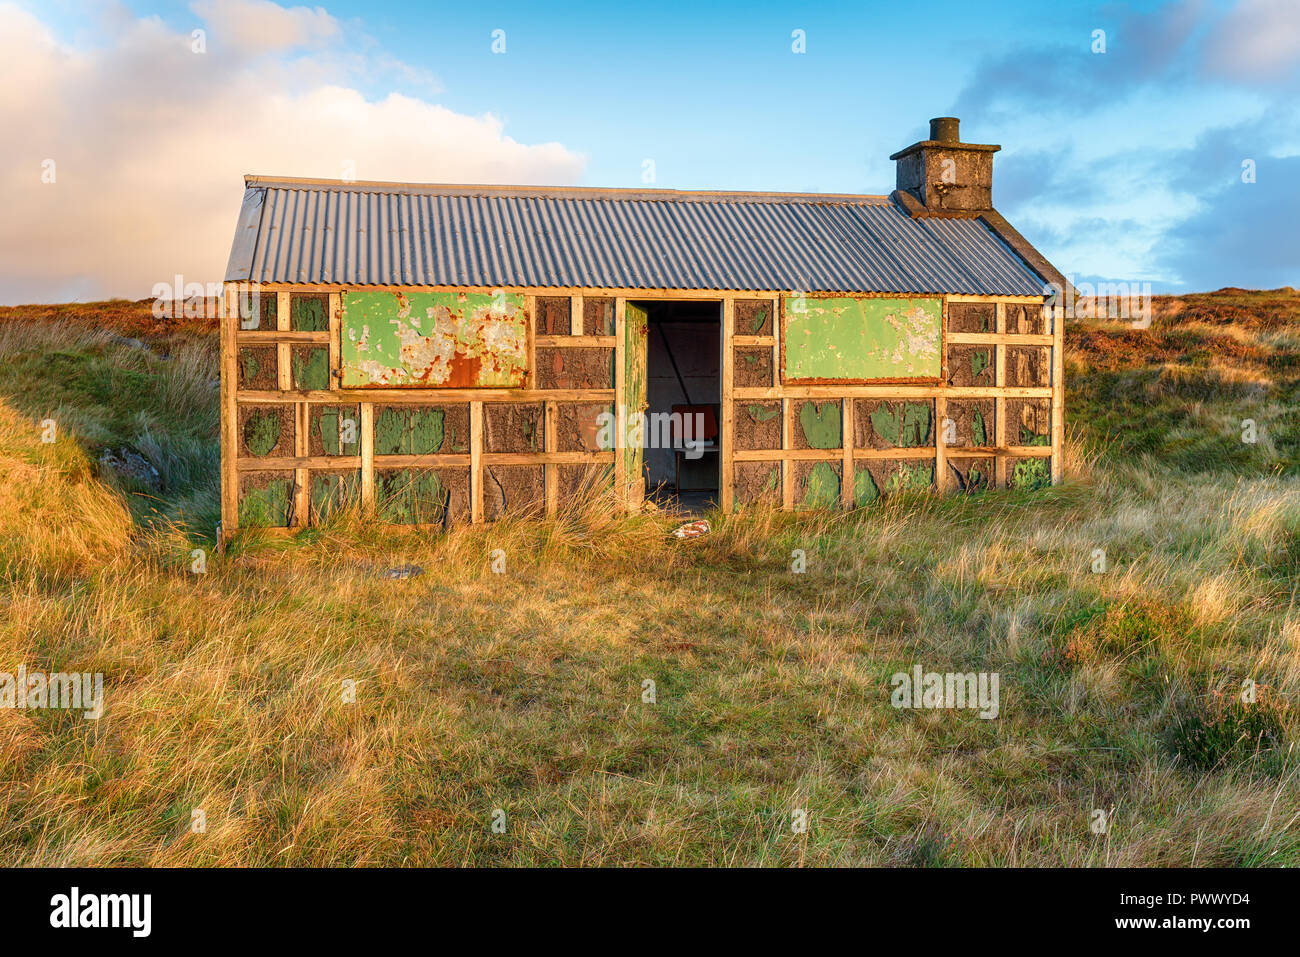 An old shieling or shepherds hut on the Isle of Lewis in Scotland Stock Photo